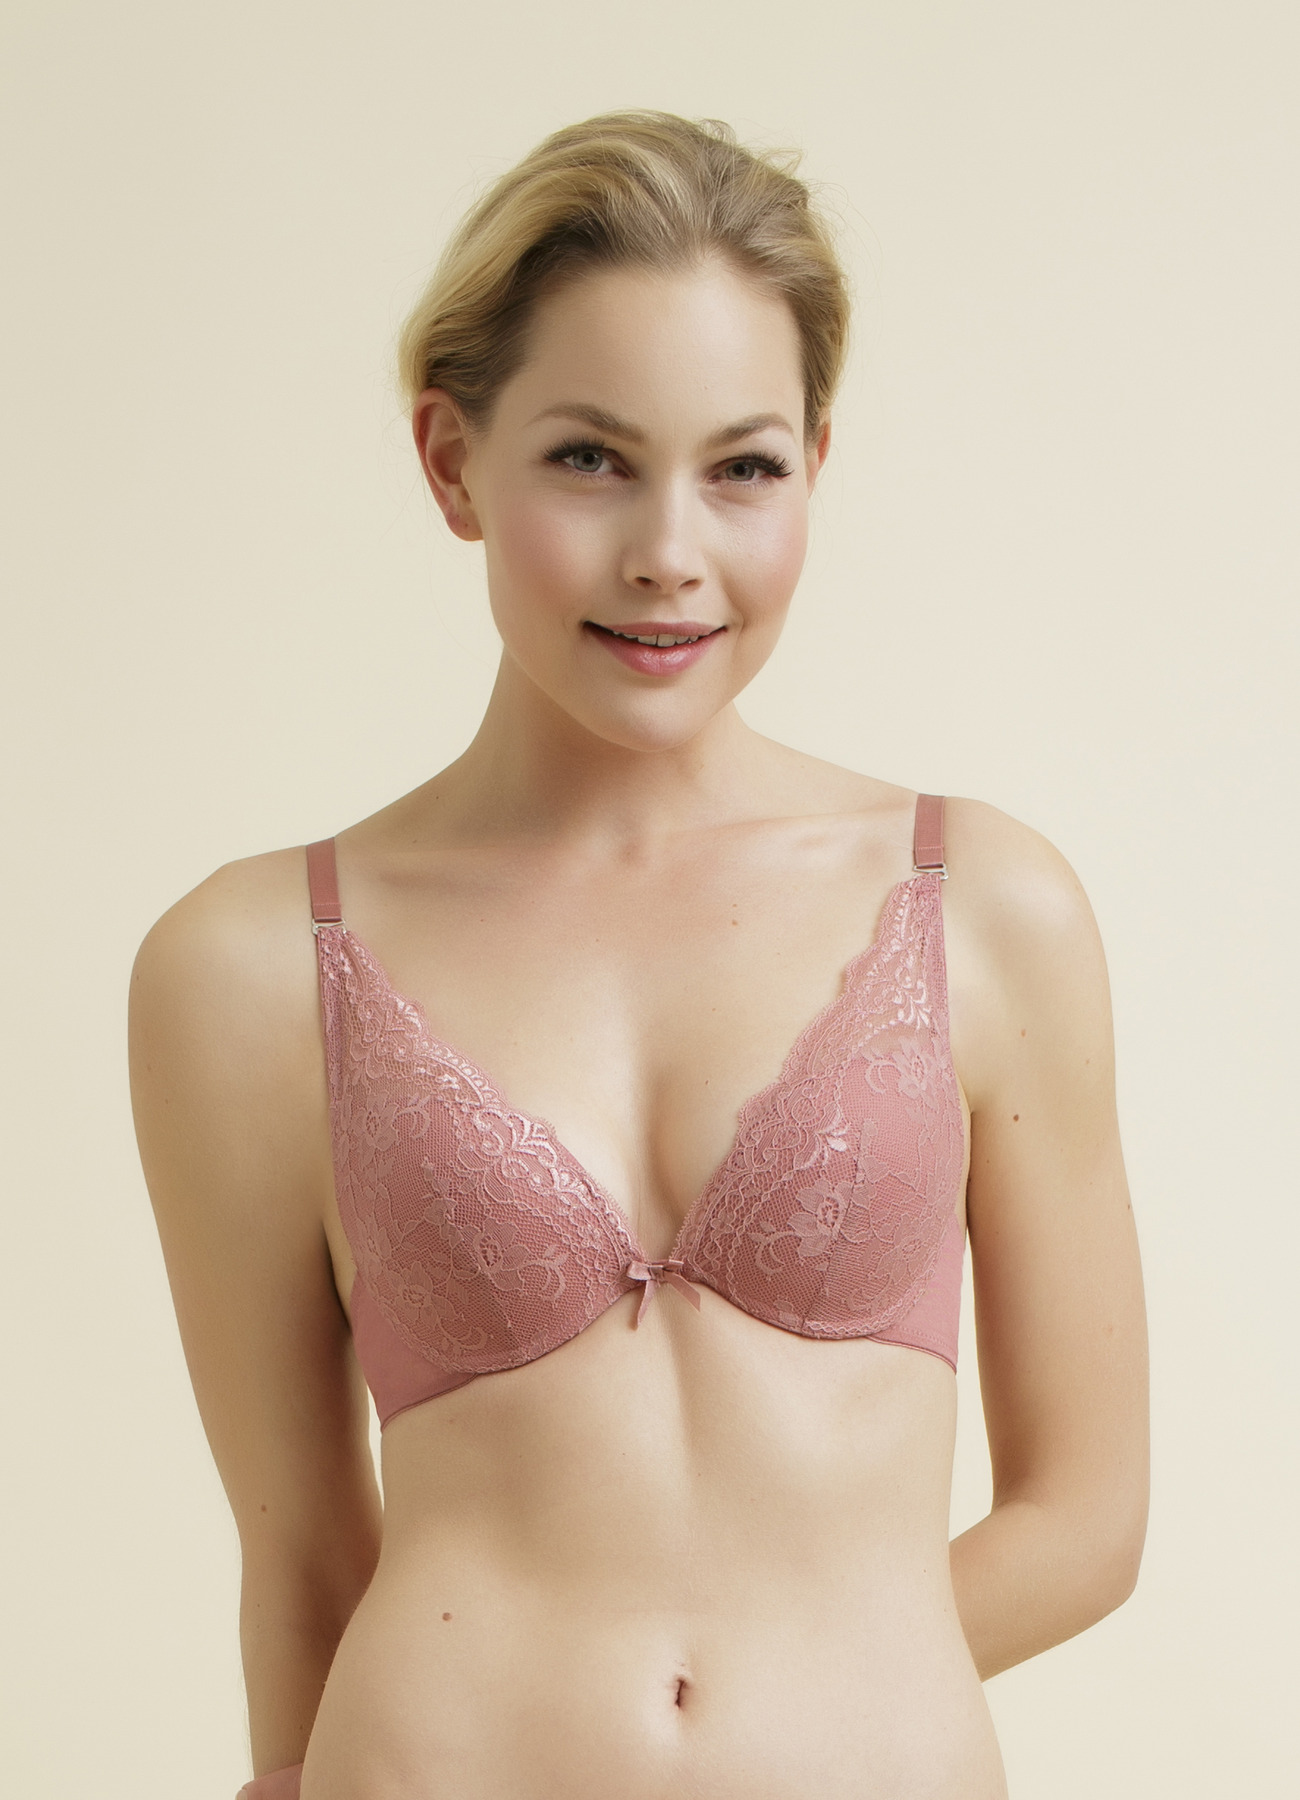 I love this bra. I own several. A size large fits perfect for my usual size 36 D. I's very soft but great support. Just enough lining in the cups to prevent show through.